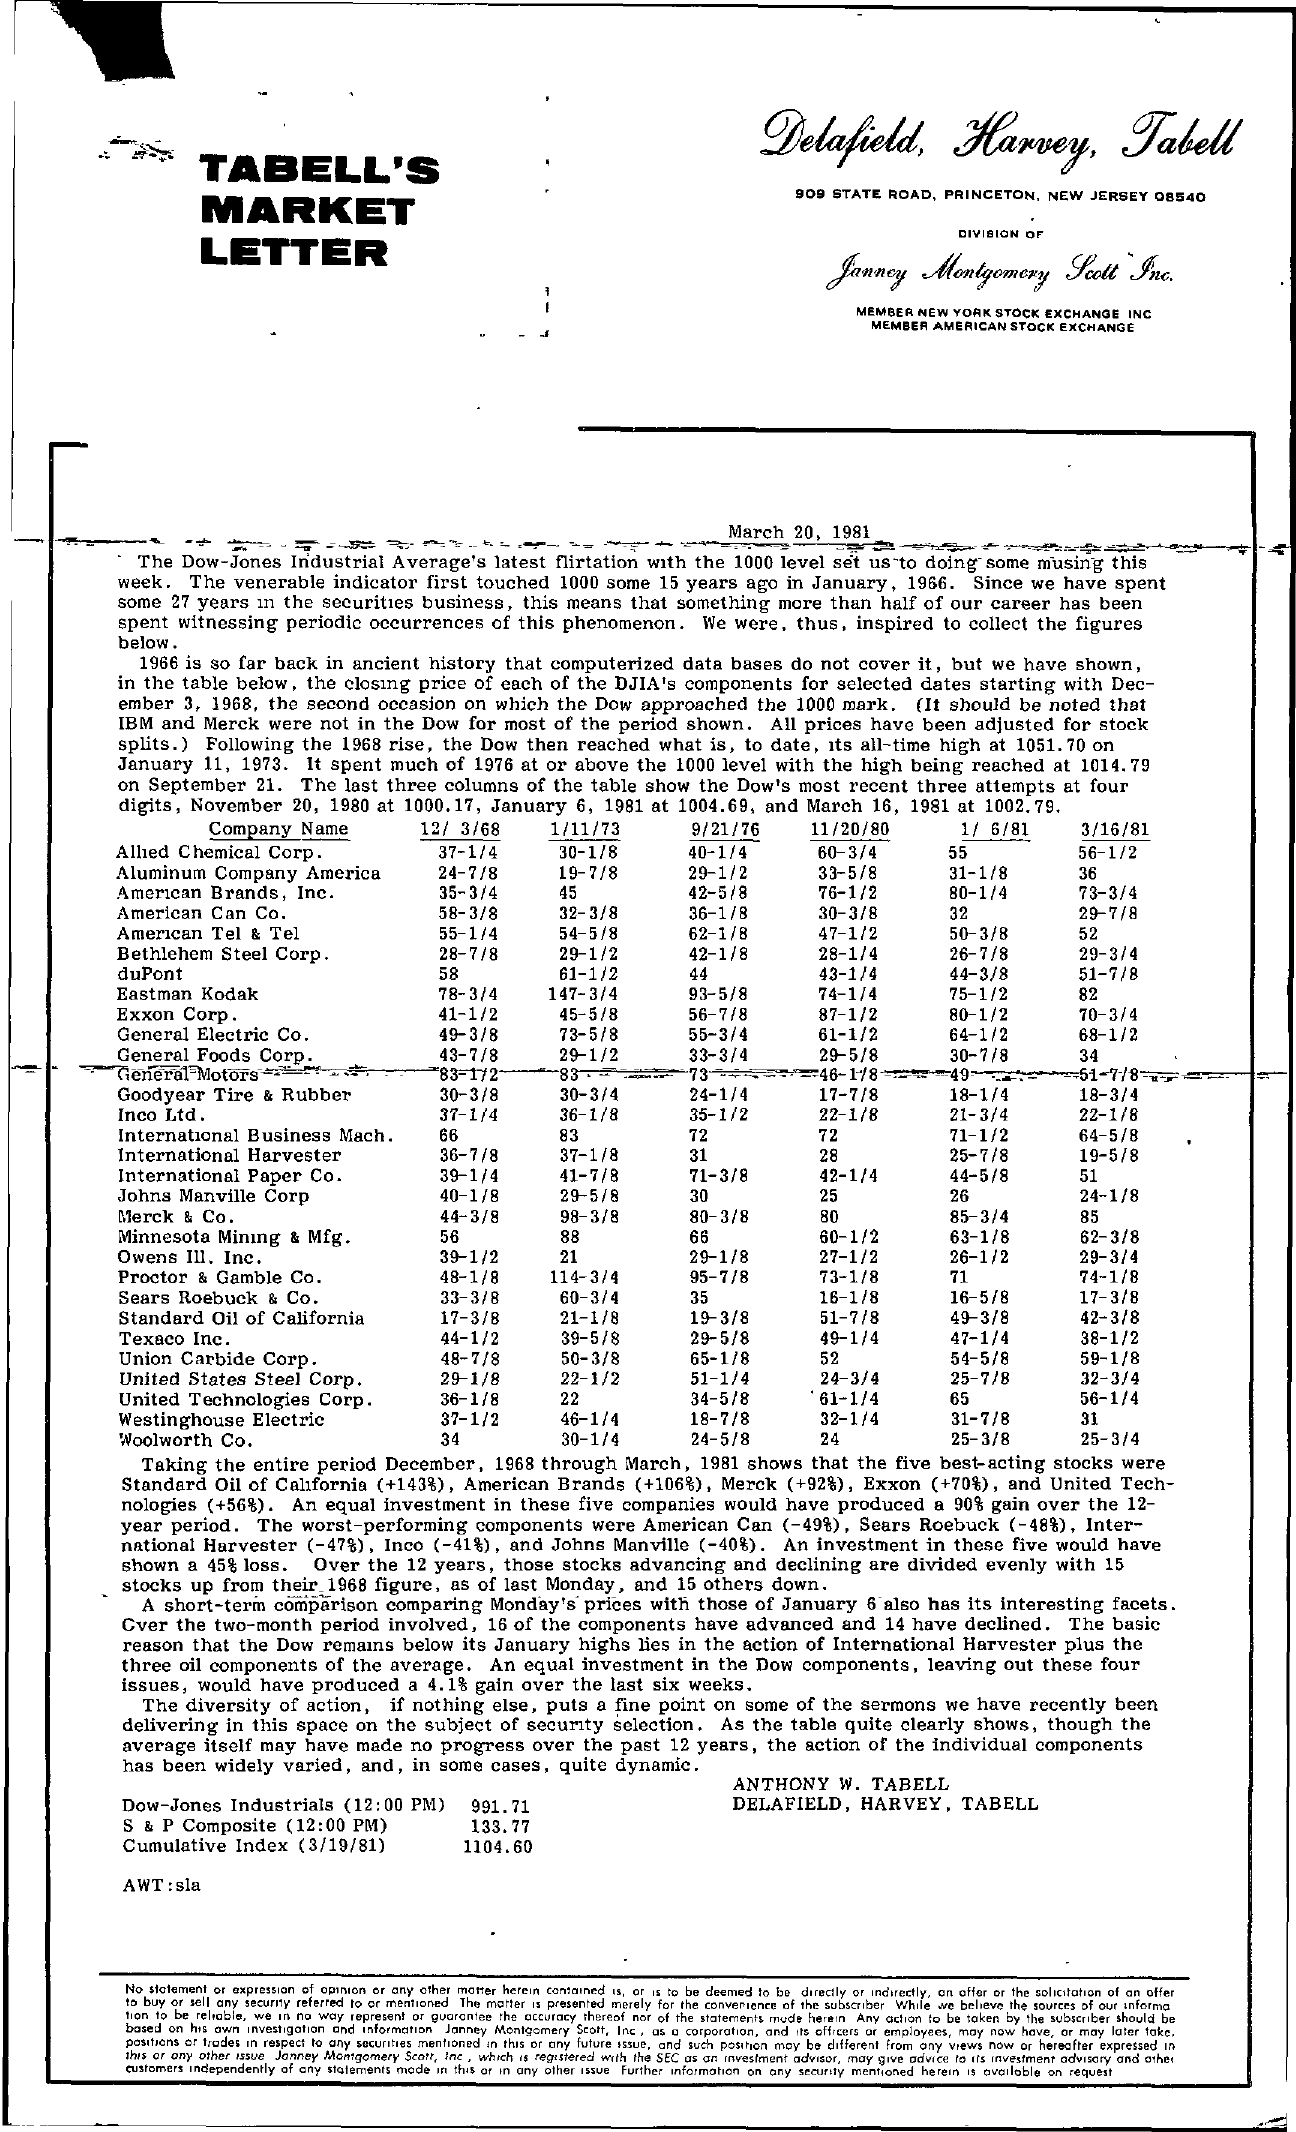 Tabell's Market Letter - March 20, 1981